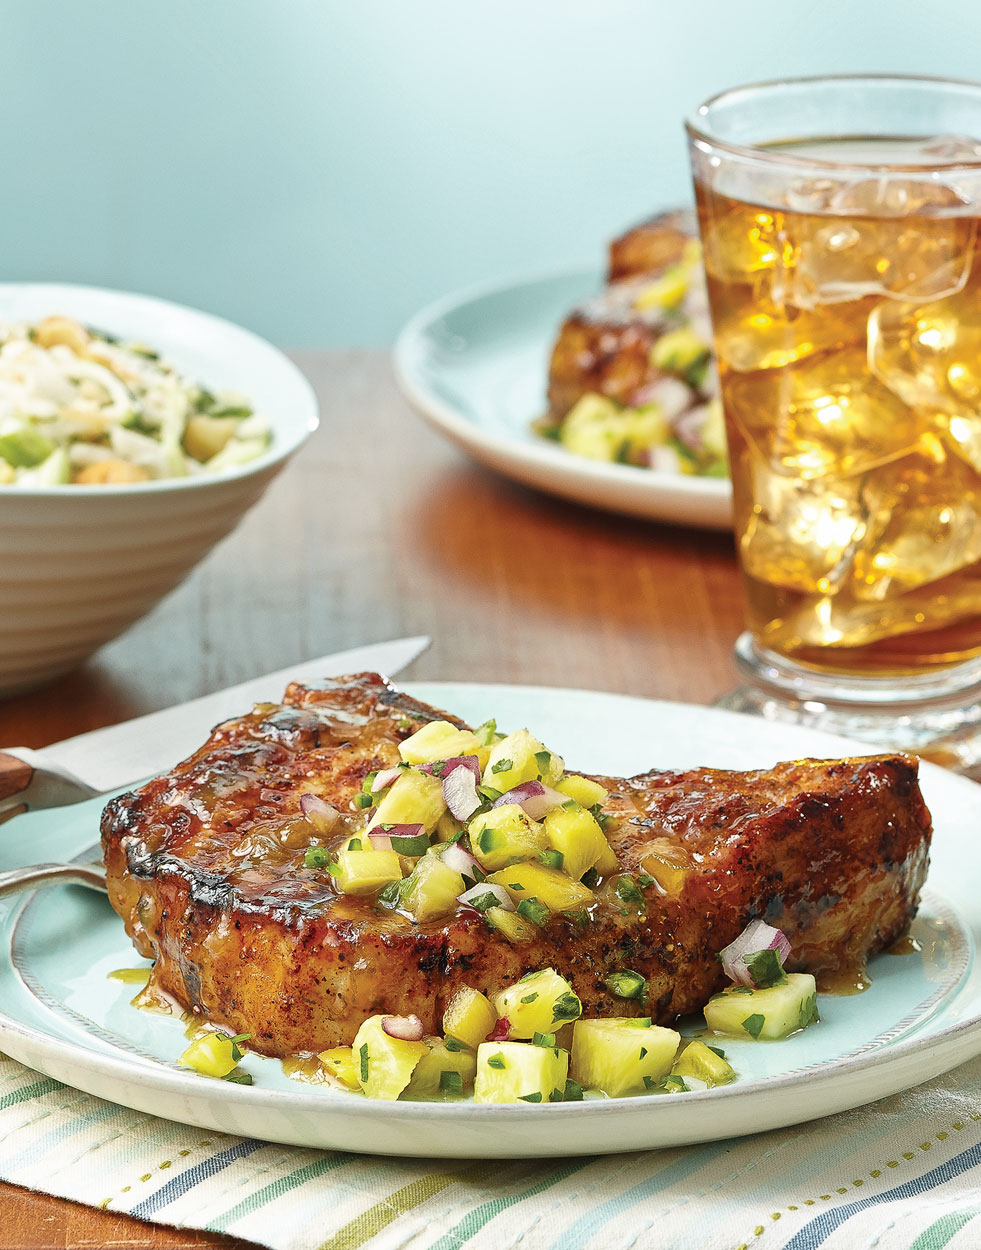 Pineapple-Glazed Pork Chops with pineapple & mango relish